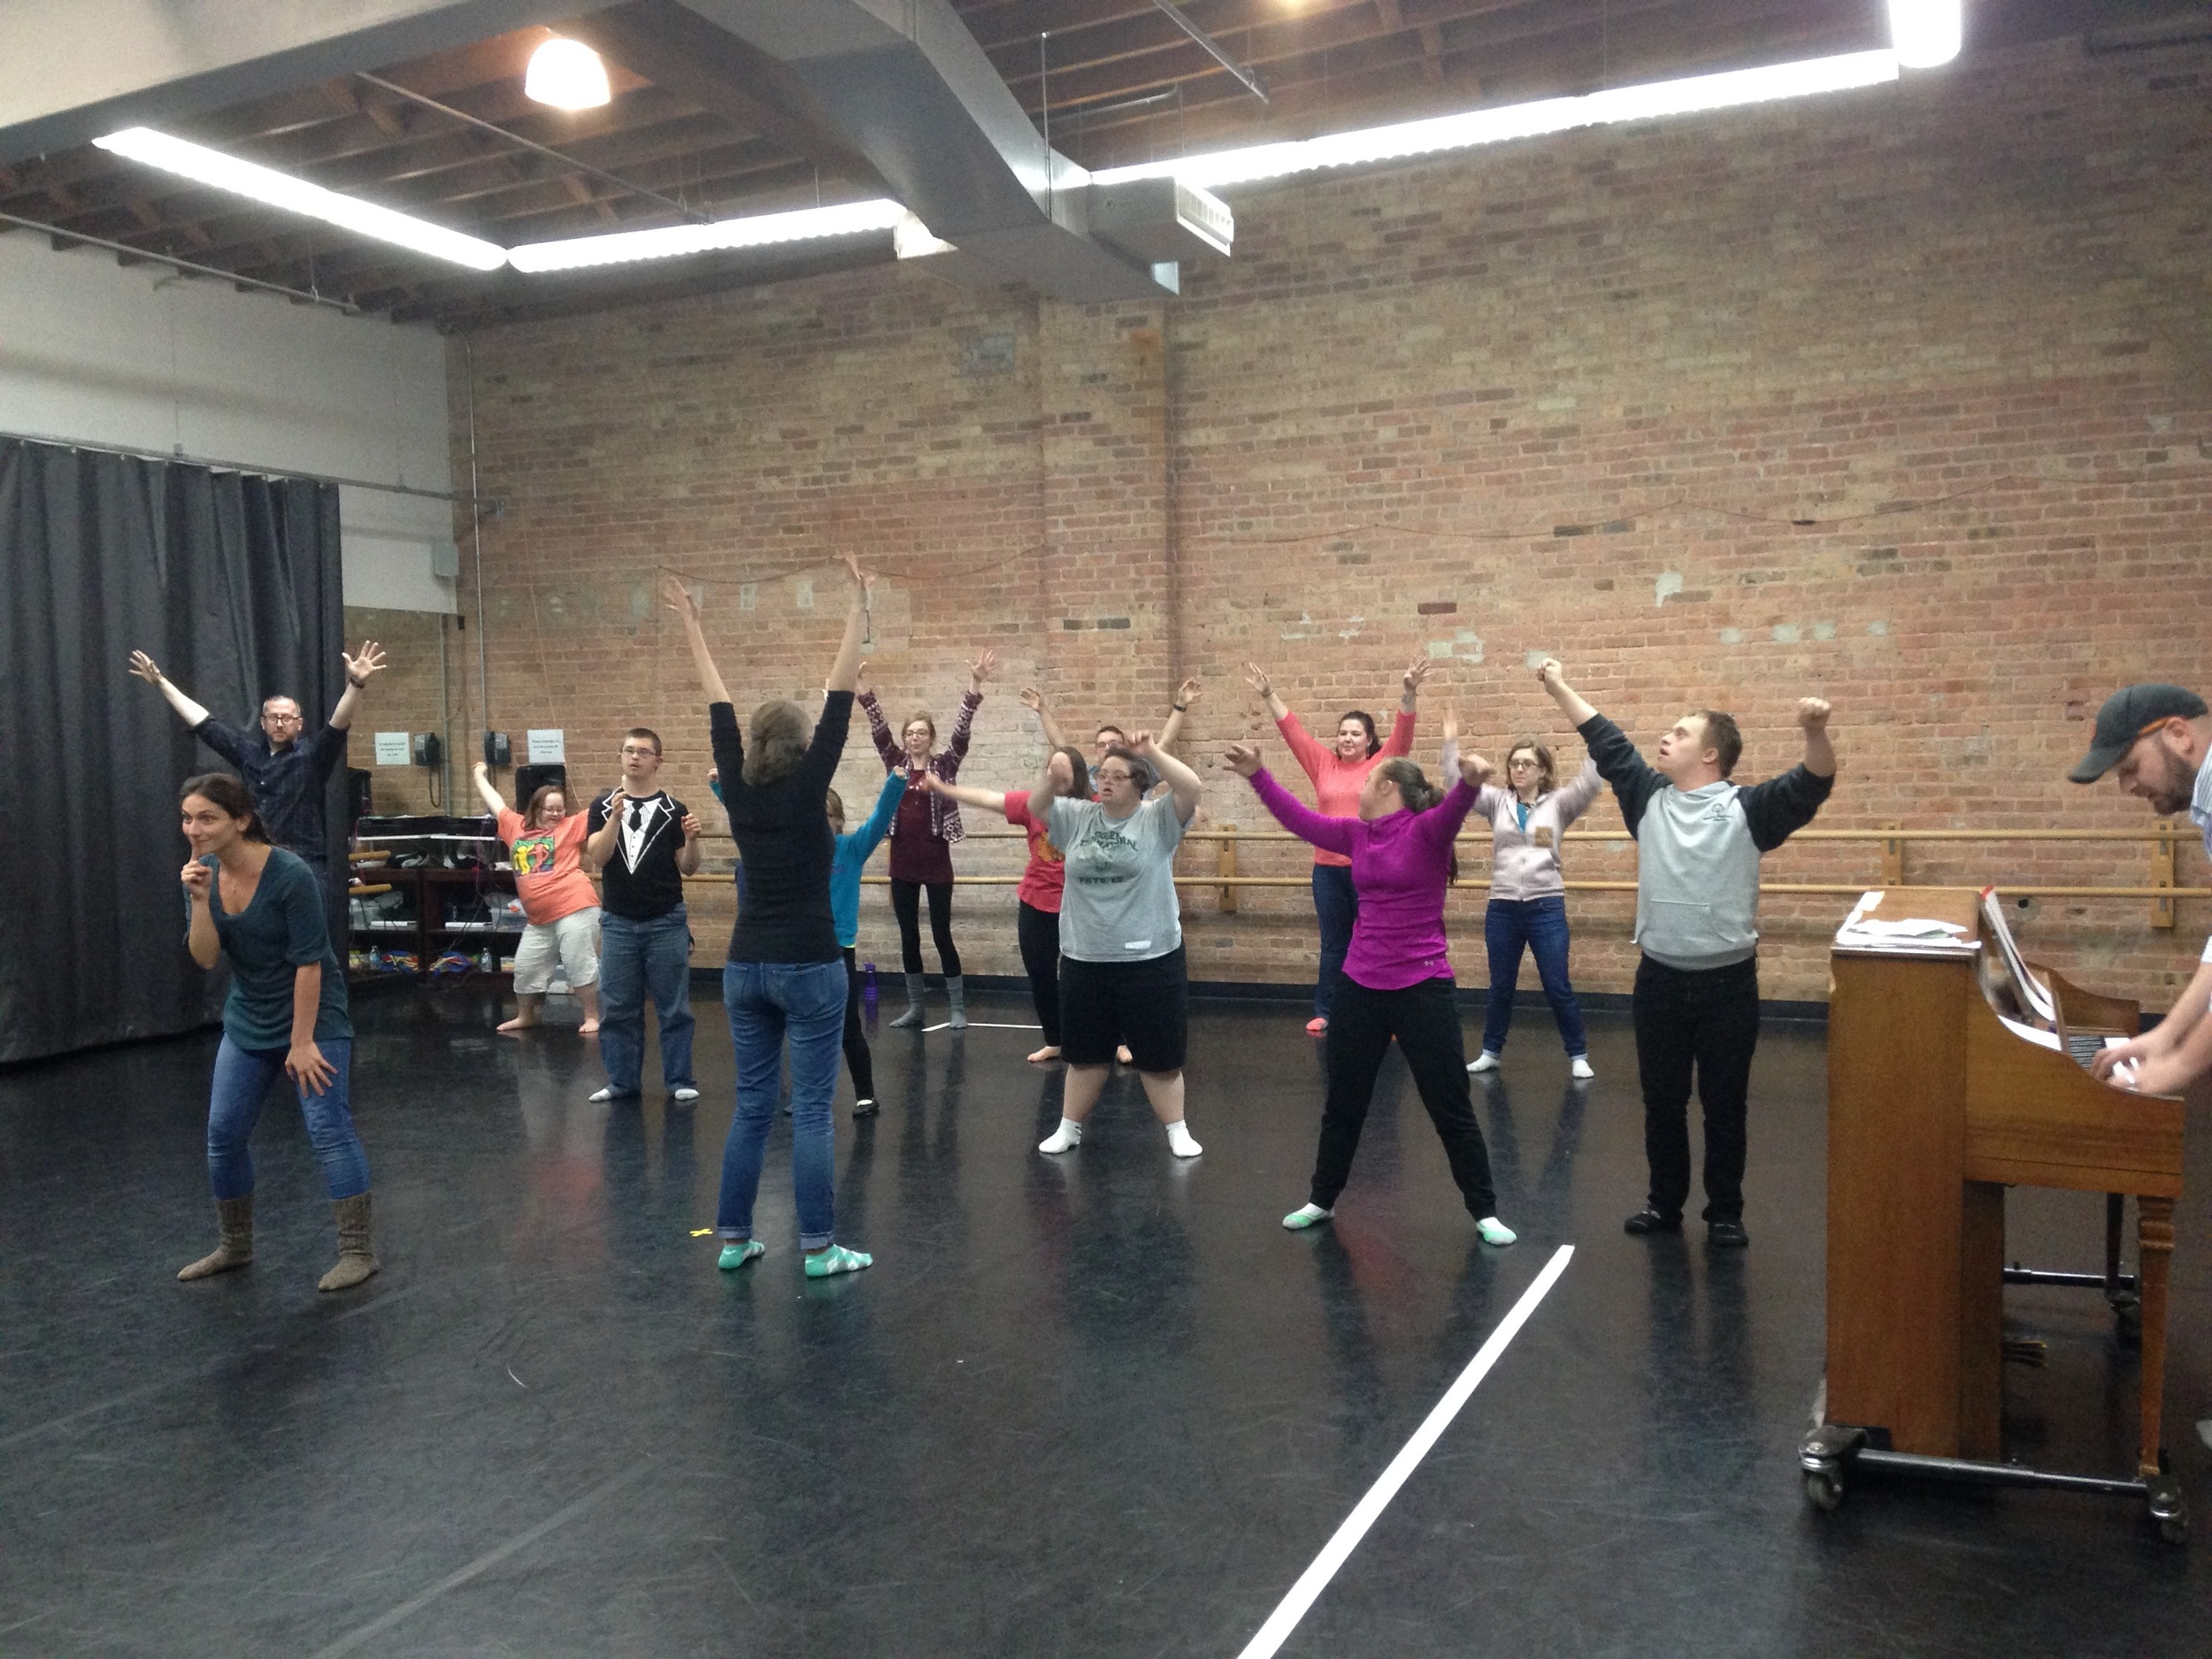 The Lemons singing and dancing their hearts out during Mash-Up practice.